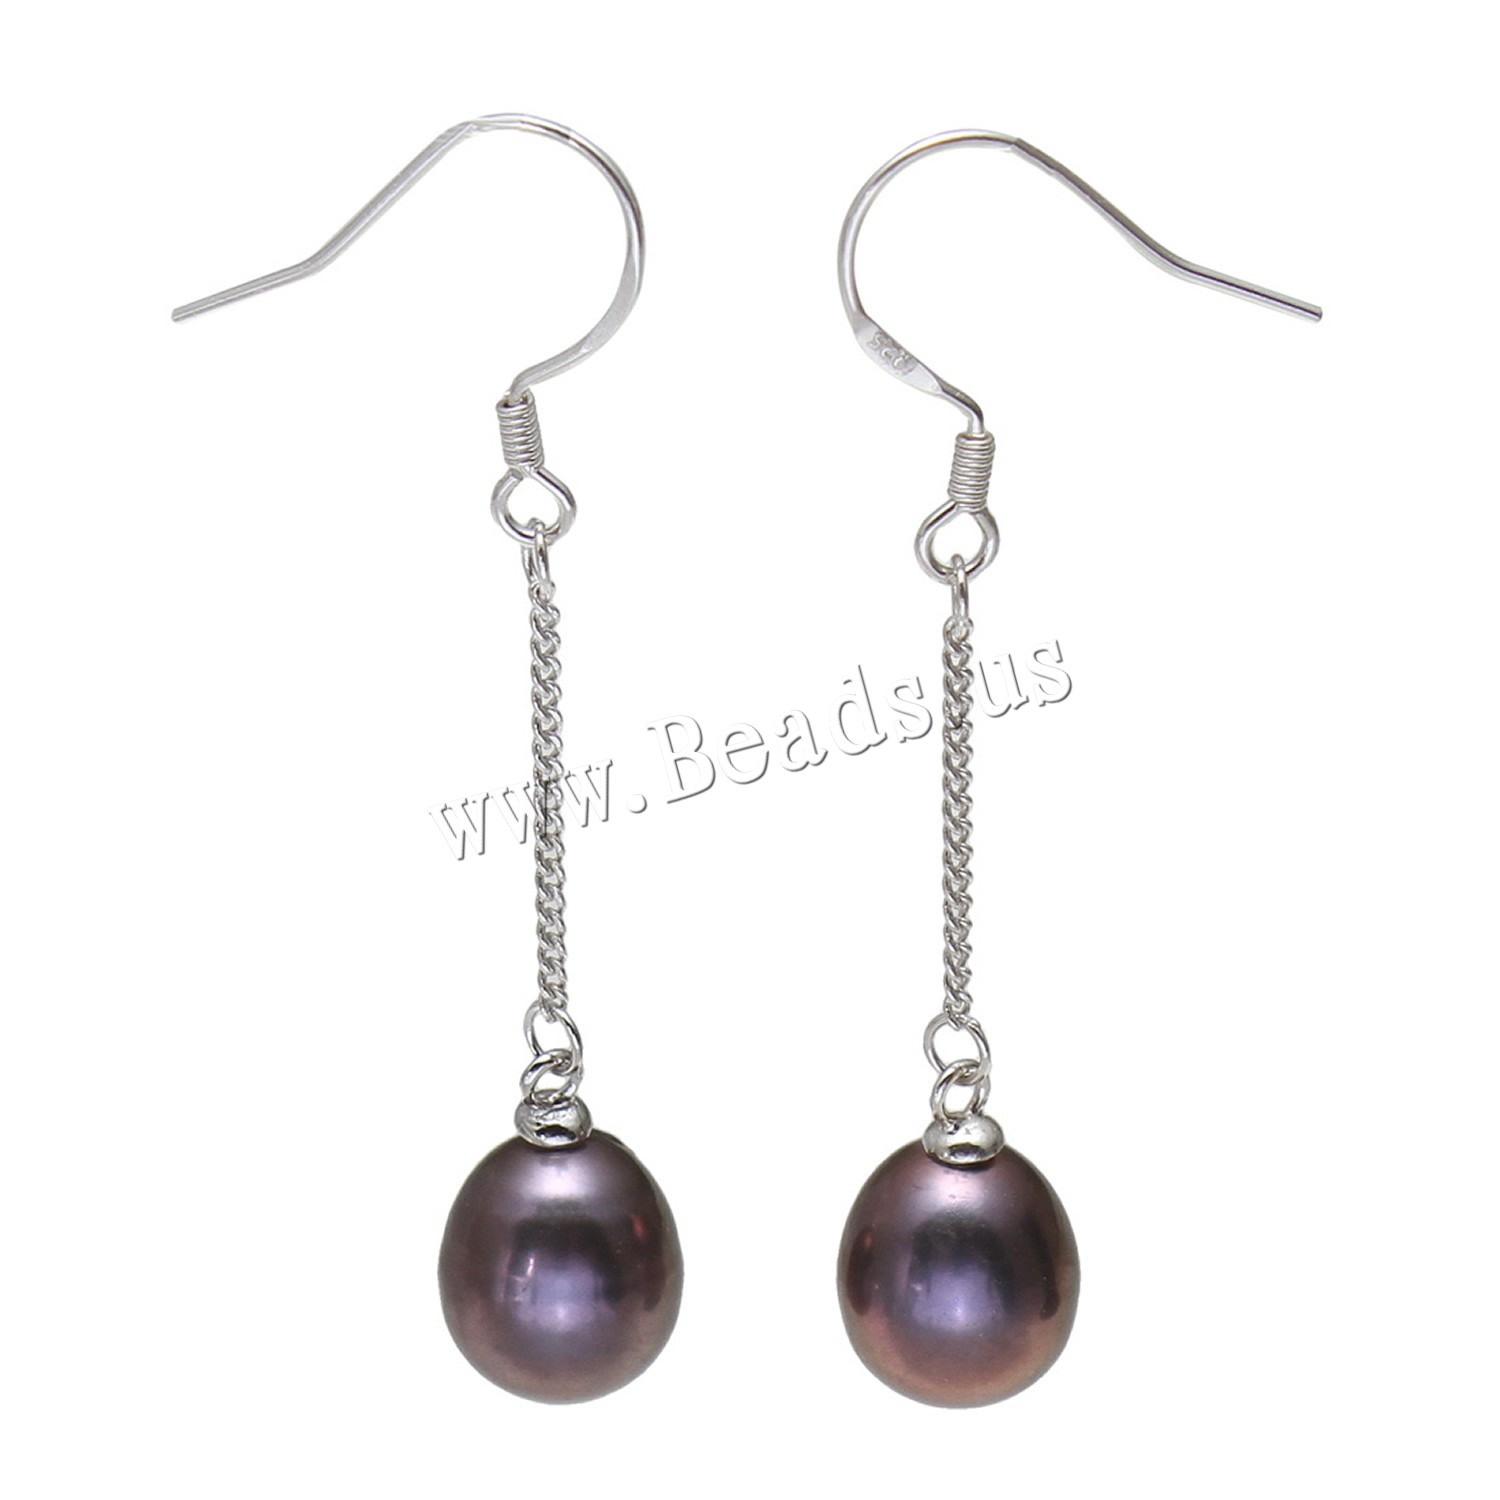 Buy Freshwater Pearl Earrings Brass Rice platinum color plated woman black 9-10mmuff0c44mm Sold Pair